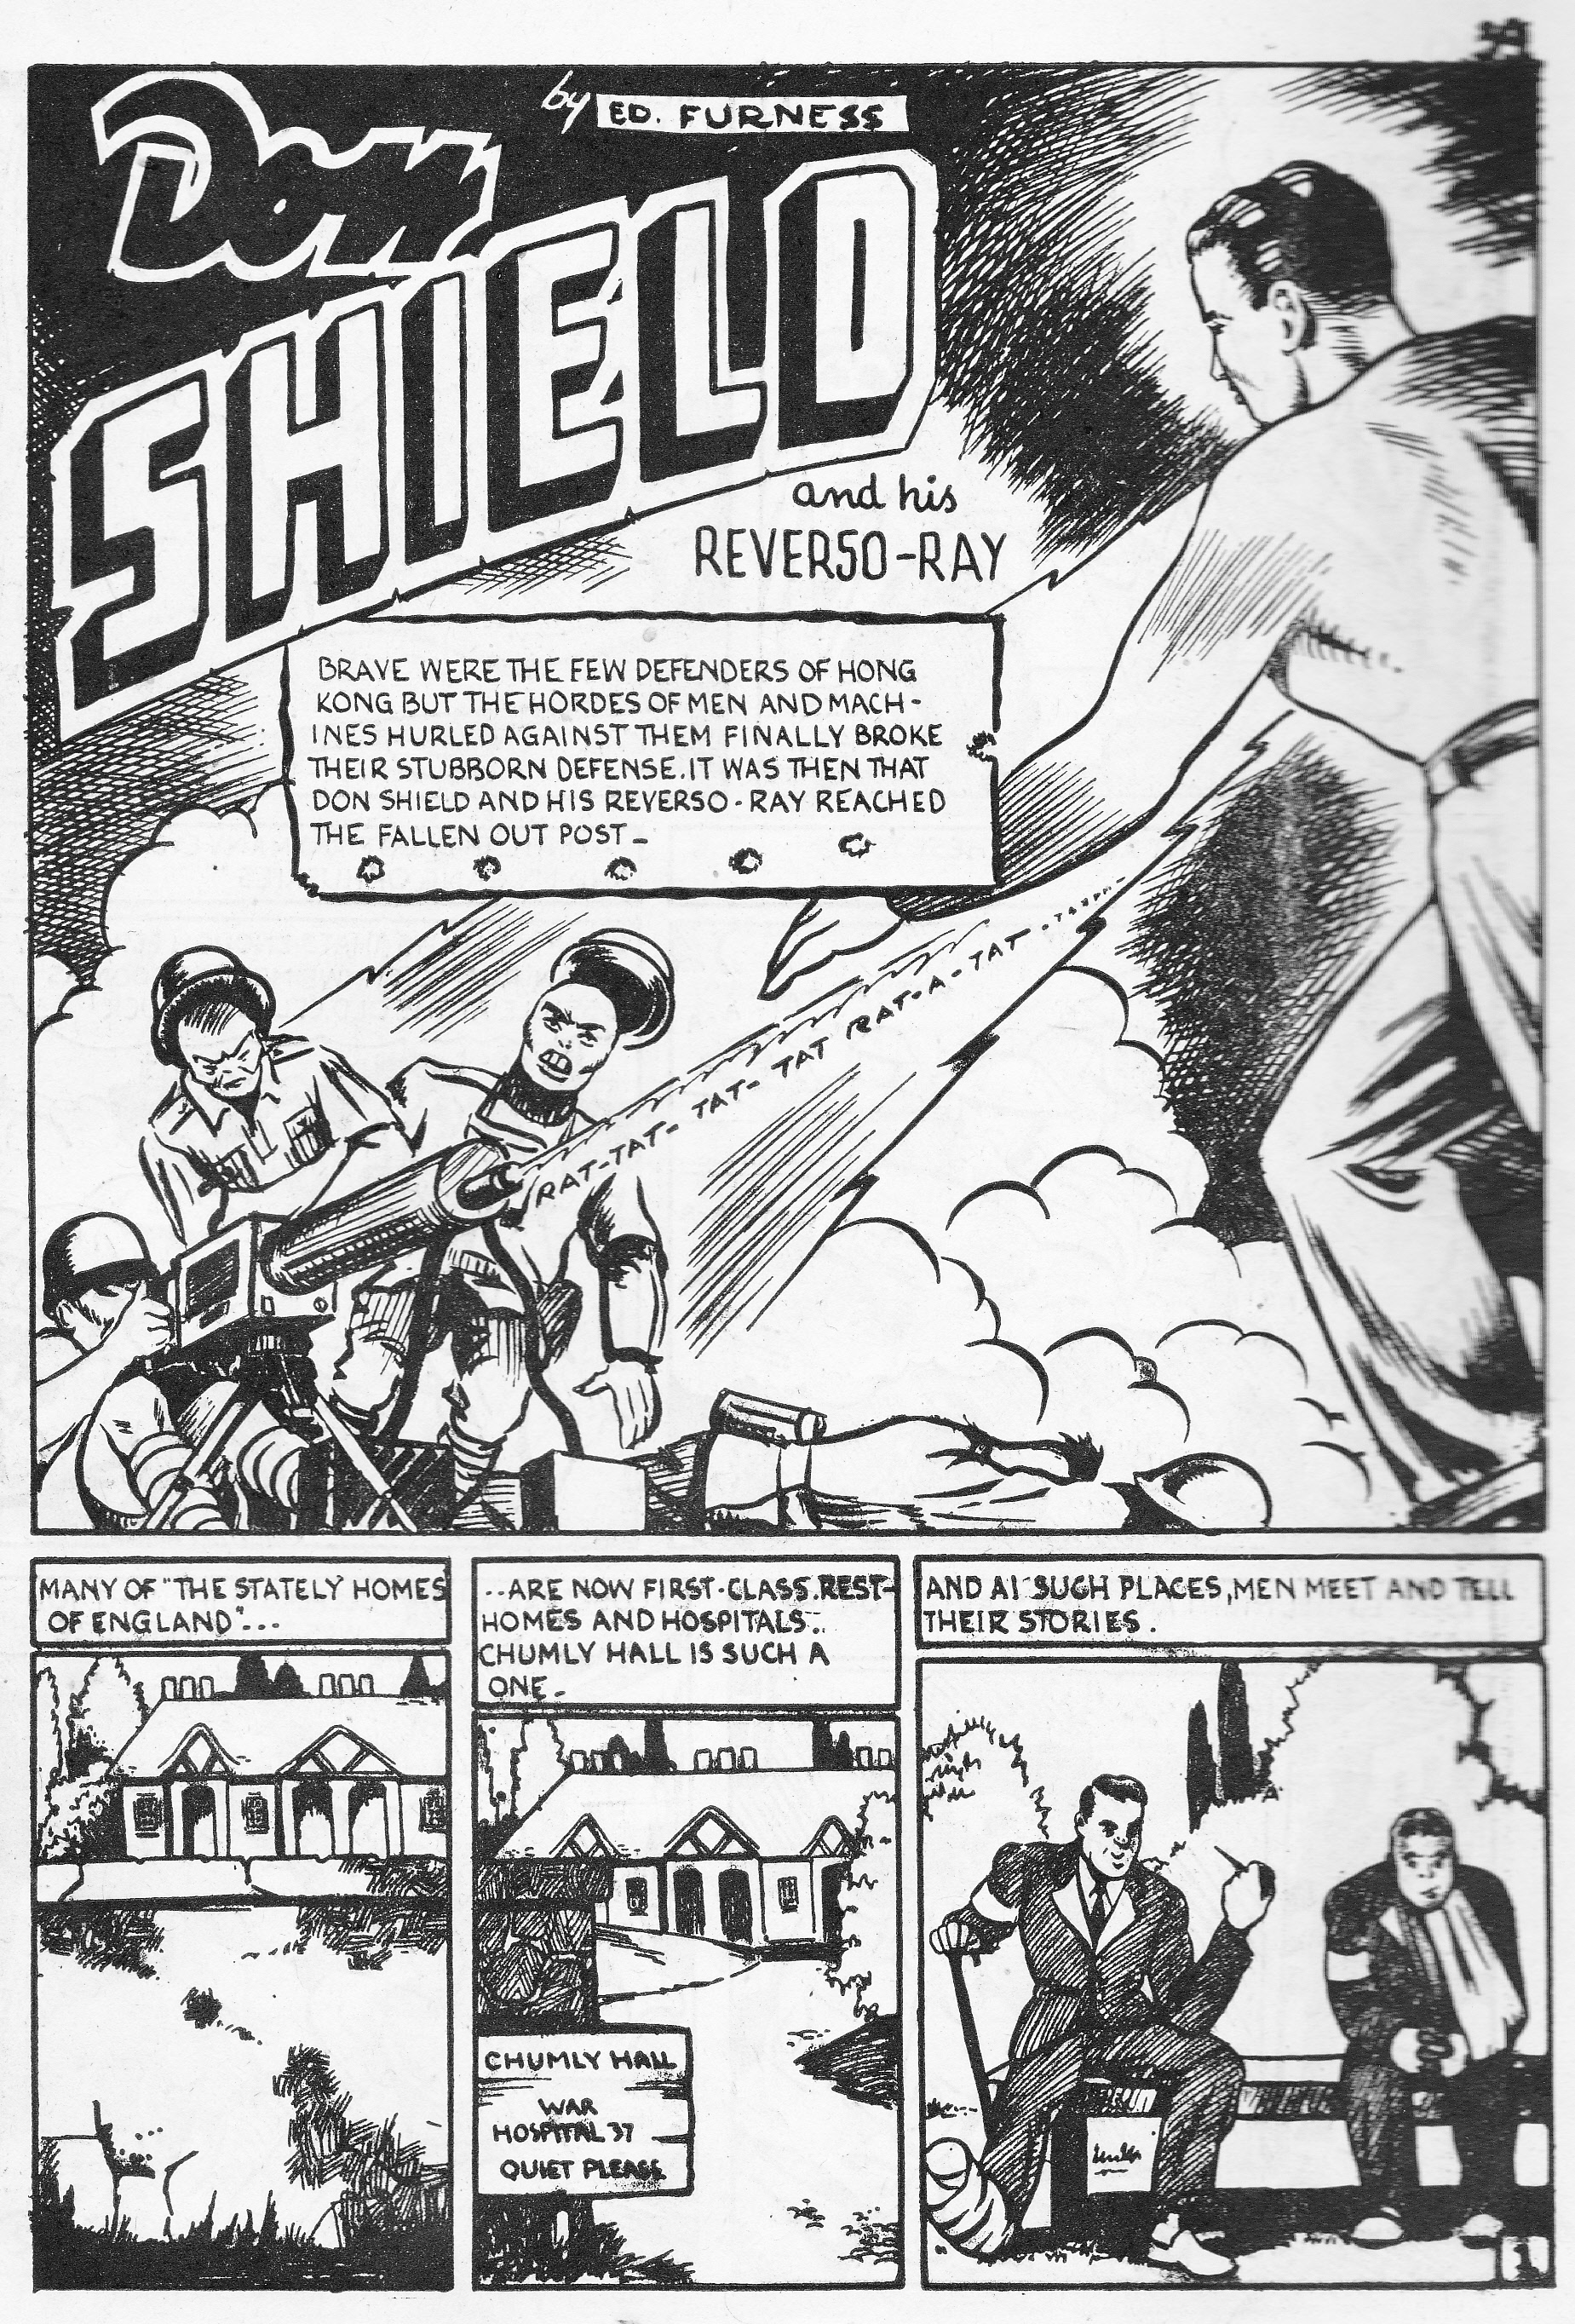 C:\Users\Robert\Documents\CARTOONING ILLUSTRATION ANIMATION\IMAGE CARTOON\IMAGE CARTOON D\DON SHEILD, Grand Slam Comics, 1-6, May 1942, 39.jpg